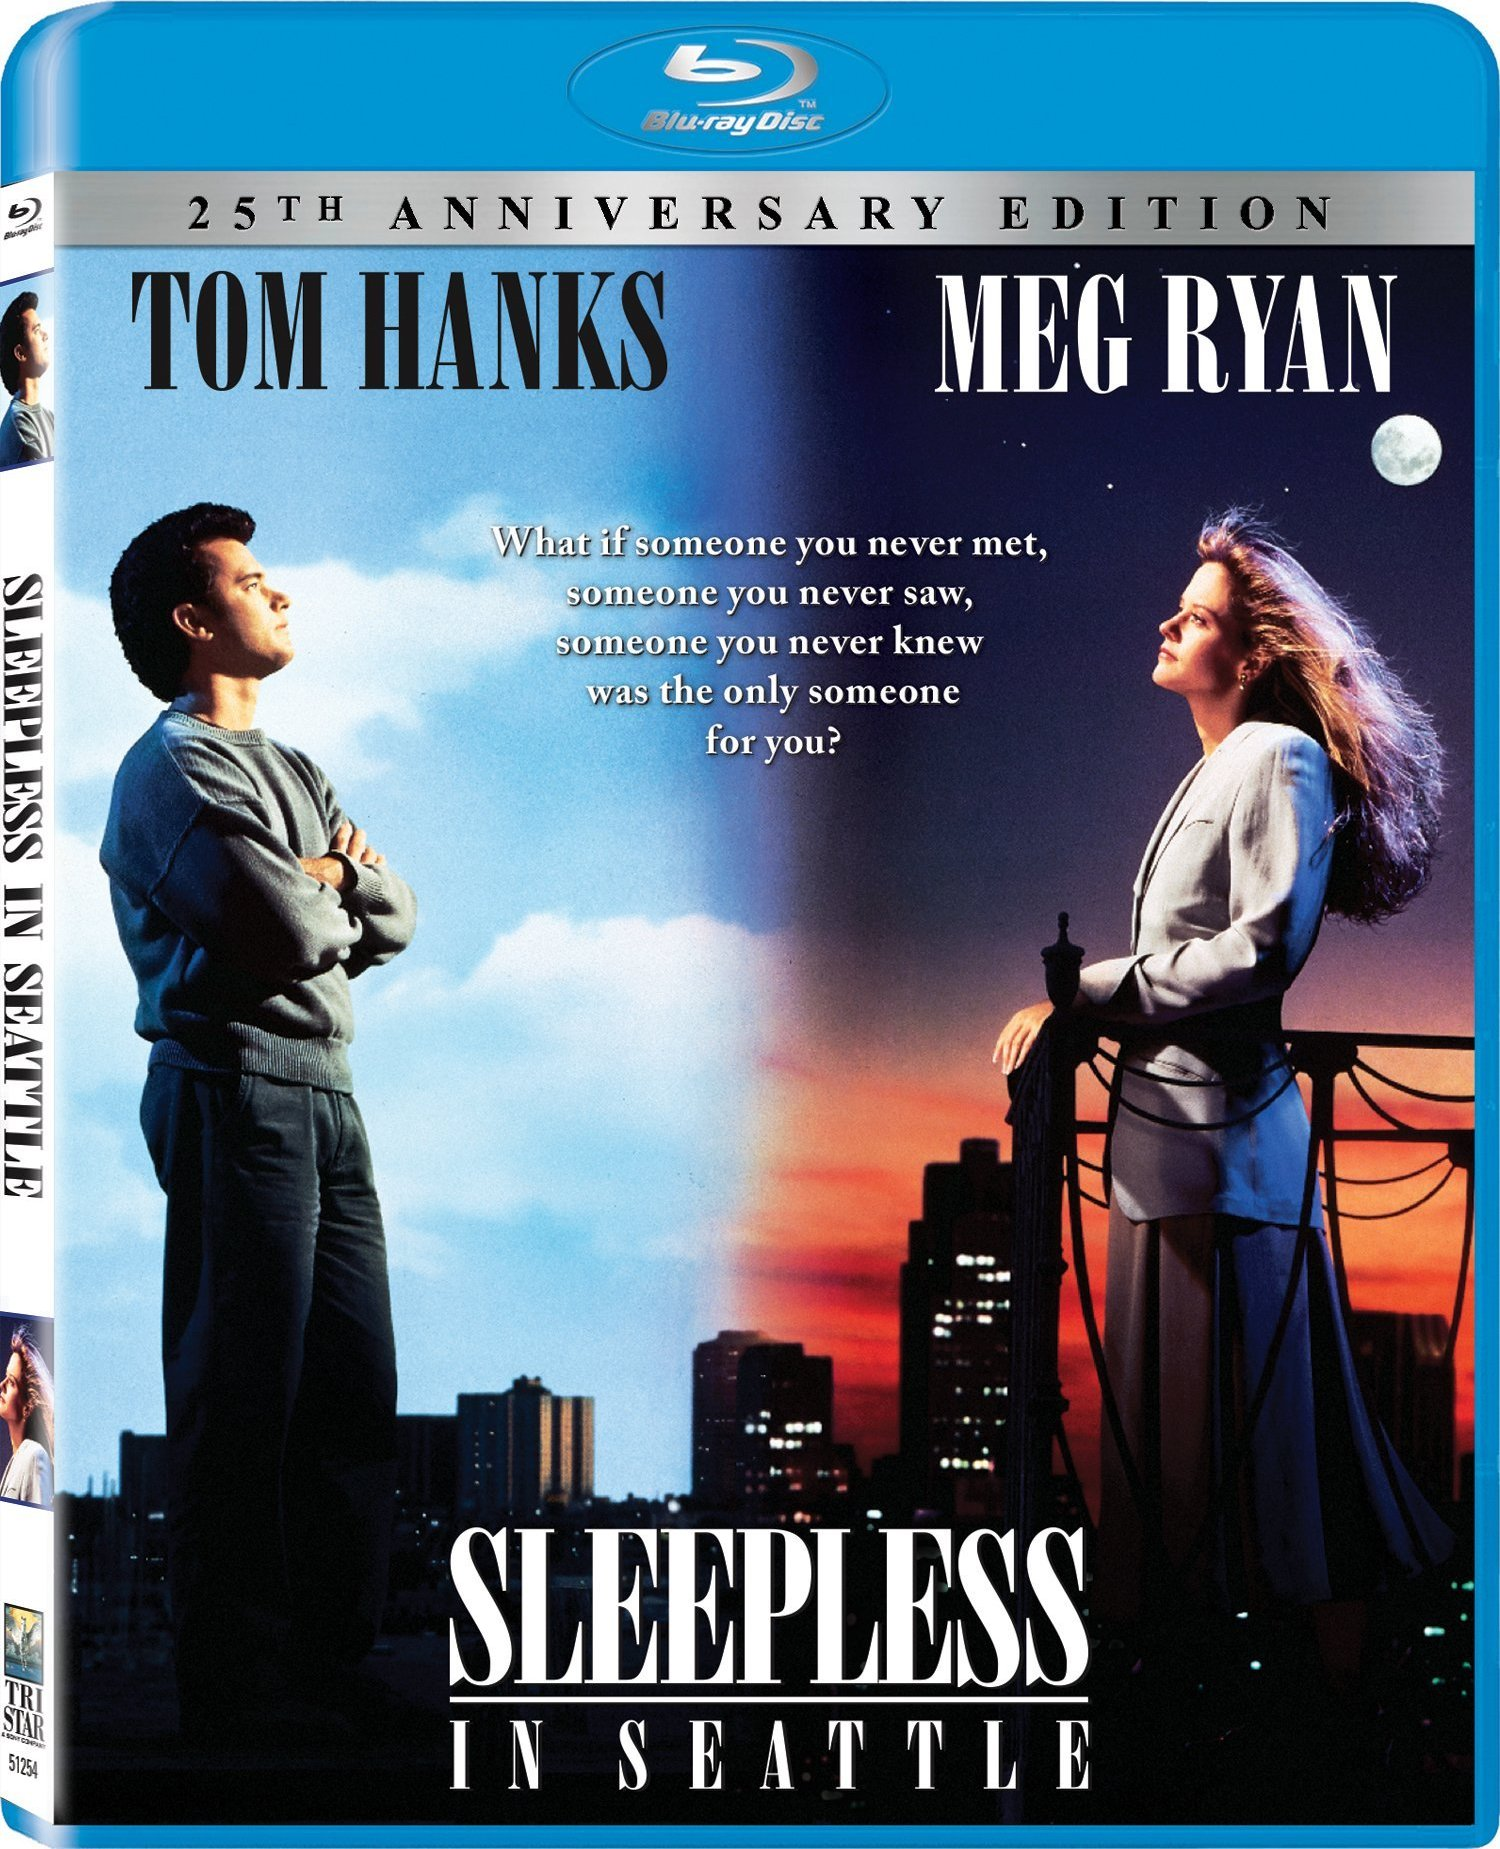 Sleepless in Seattle (25th Anniversary Edition)(1993) Blu-ray